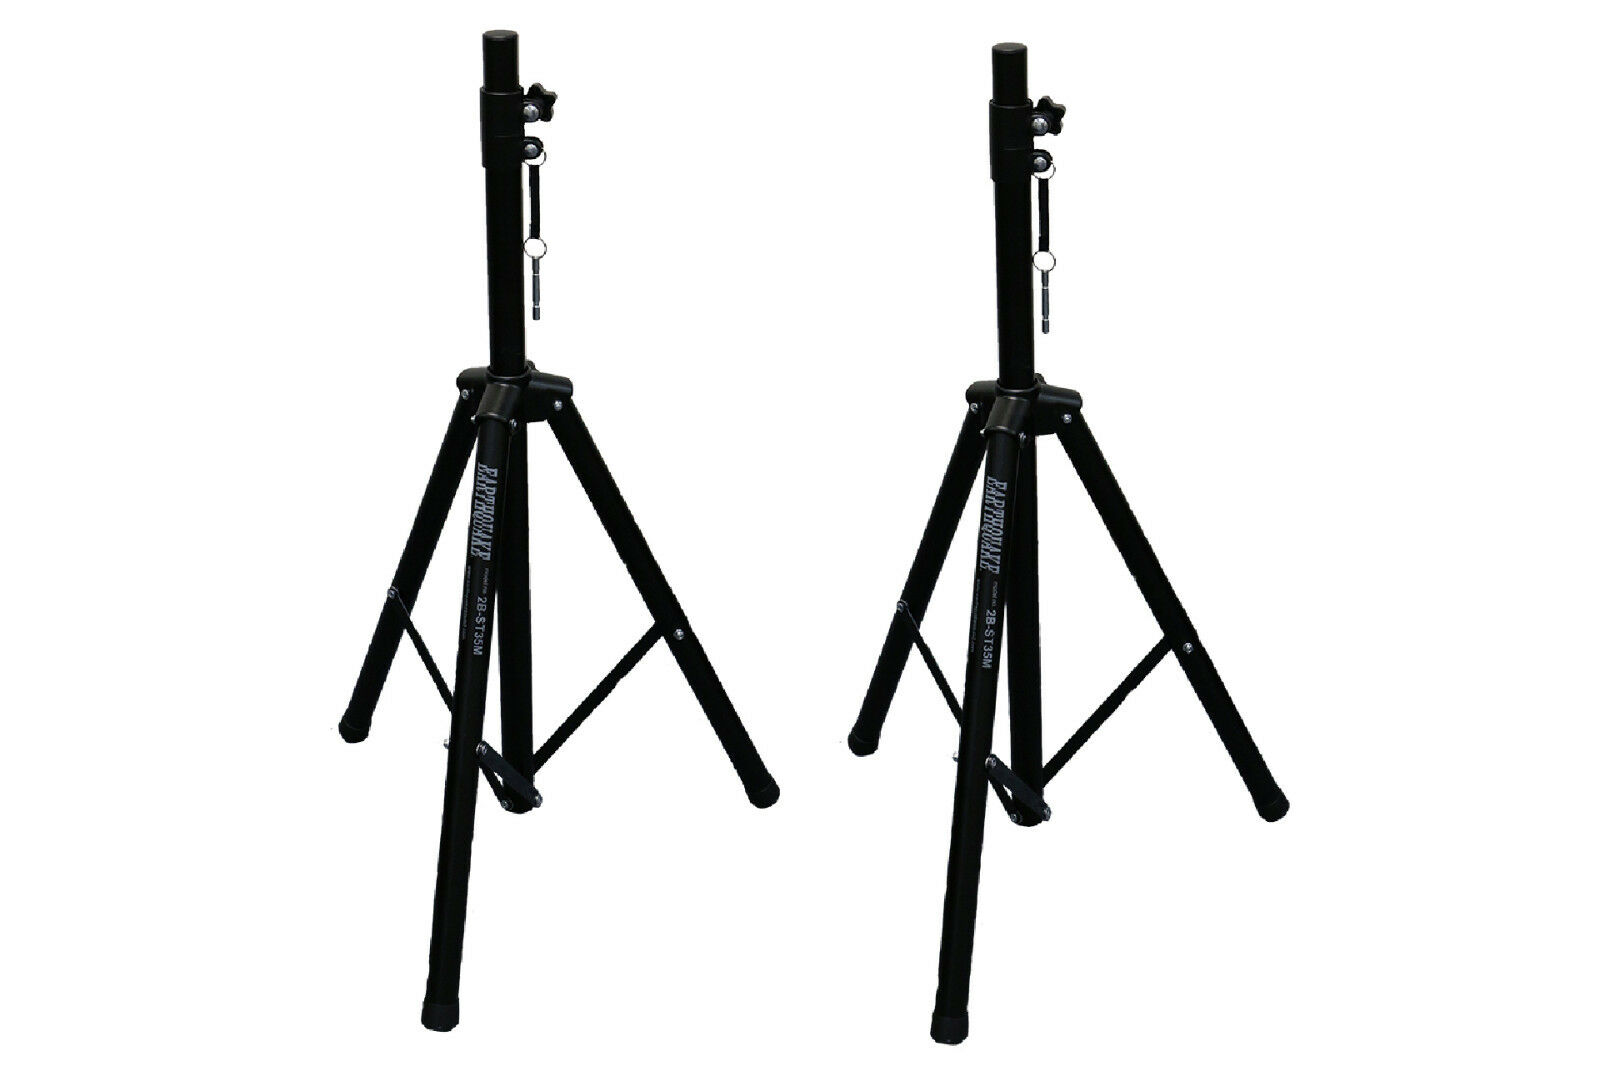 Earthquake Sound 2B-ST35M Heavy Duty Pro-audio Speaker Stands